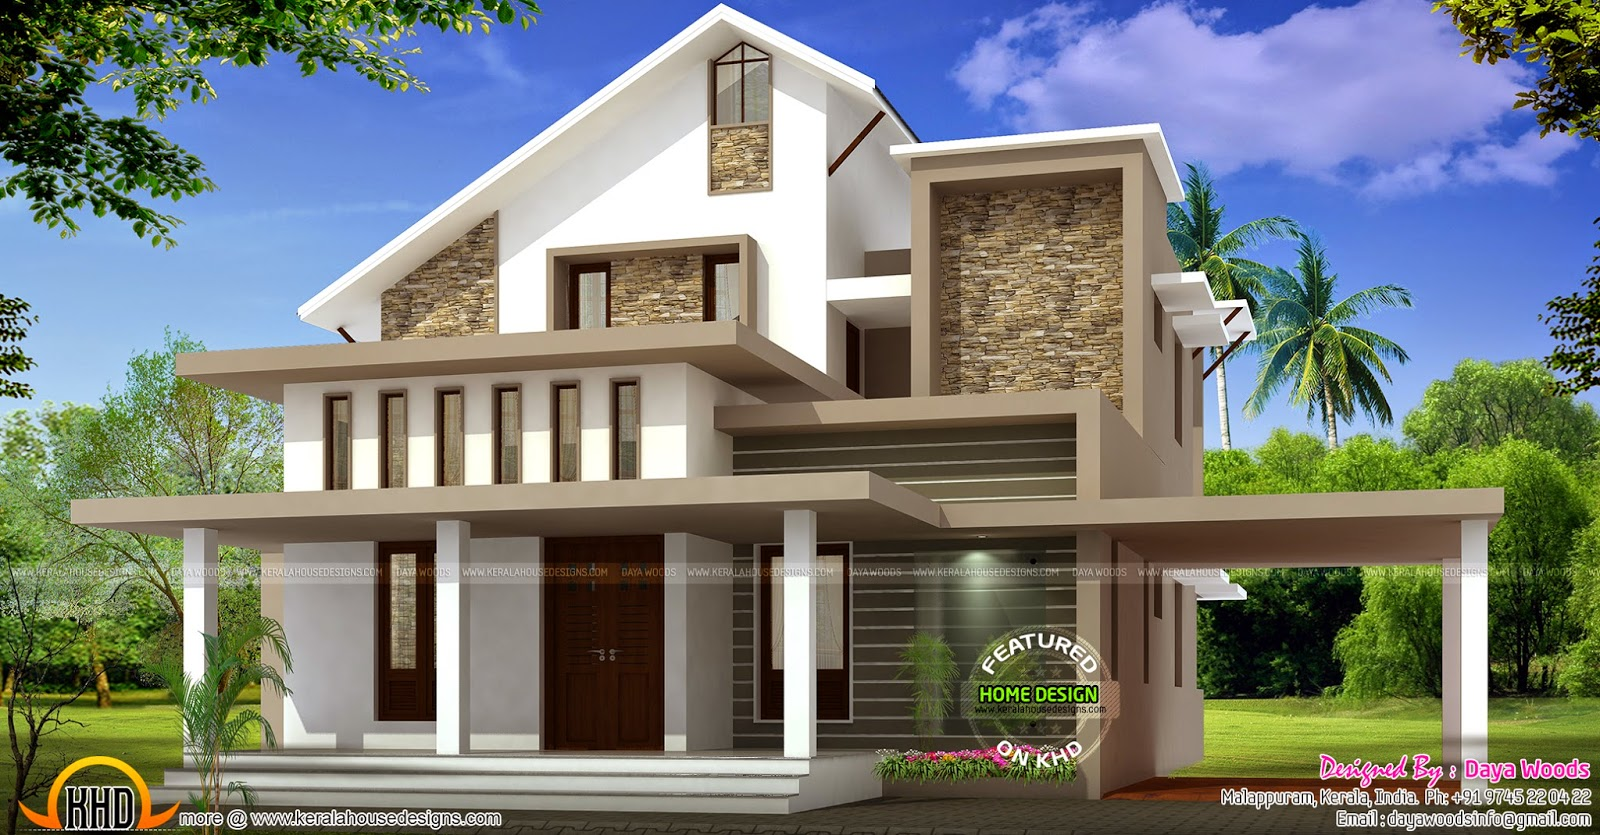 Low budget semi contemporary home kerala home design and for Homes on a budget